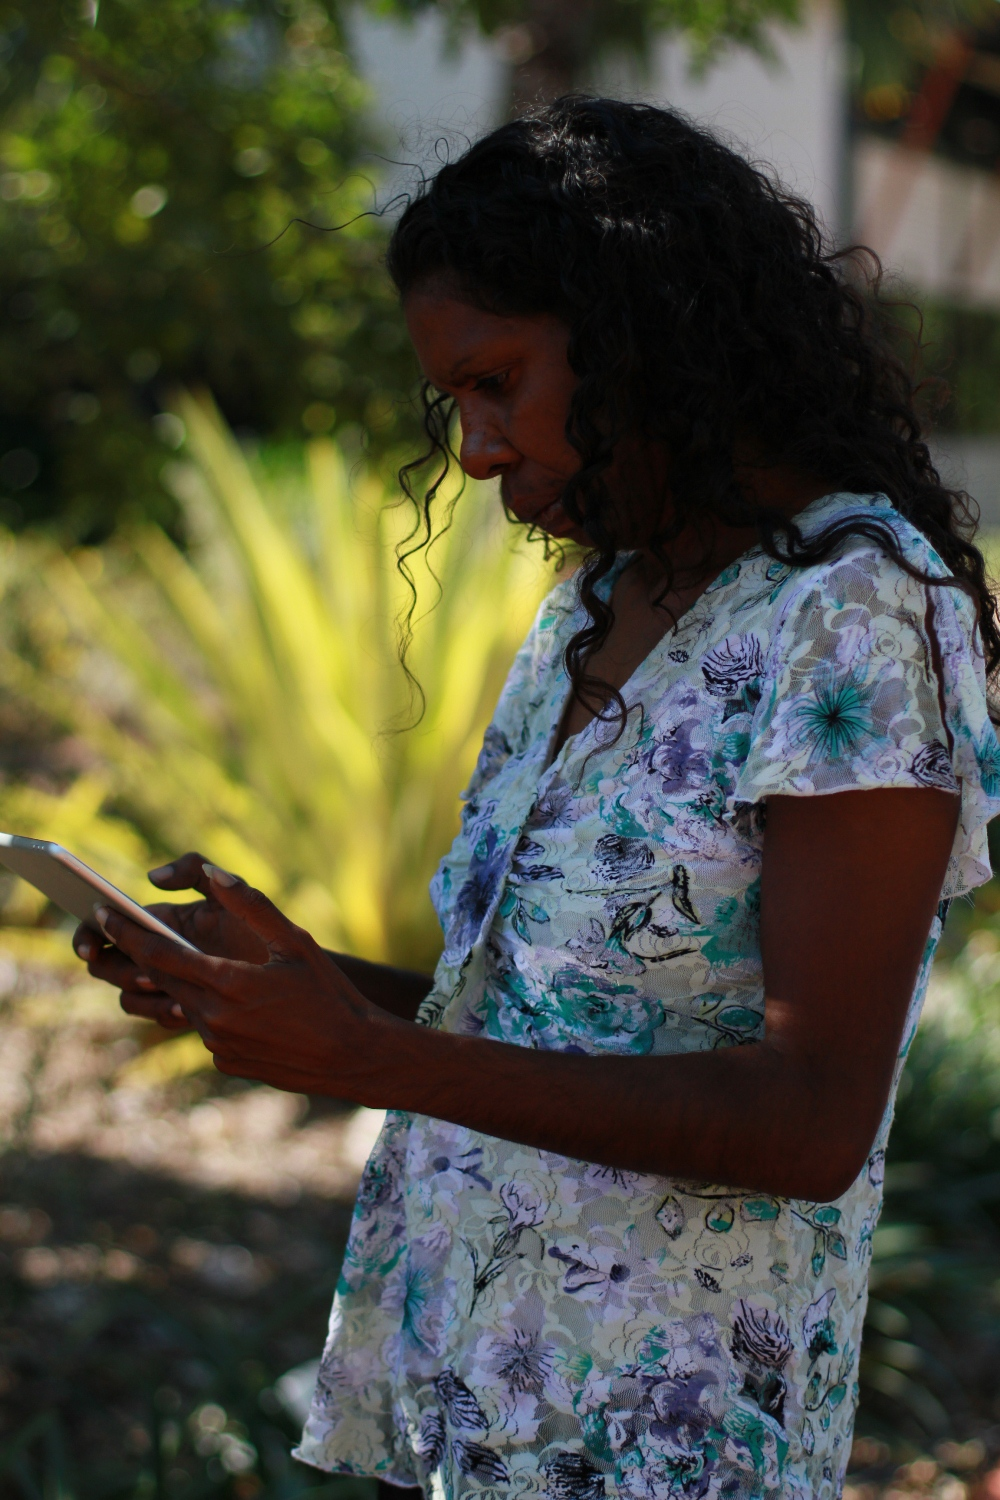 Amanda Smith filming and editing on an iPad during the 2015 Visual Arts Leadership Program Workshop in Broome © AGWA